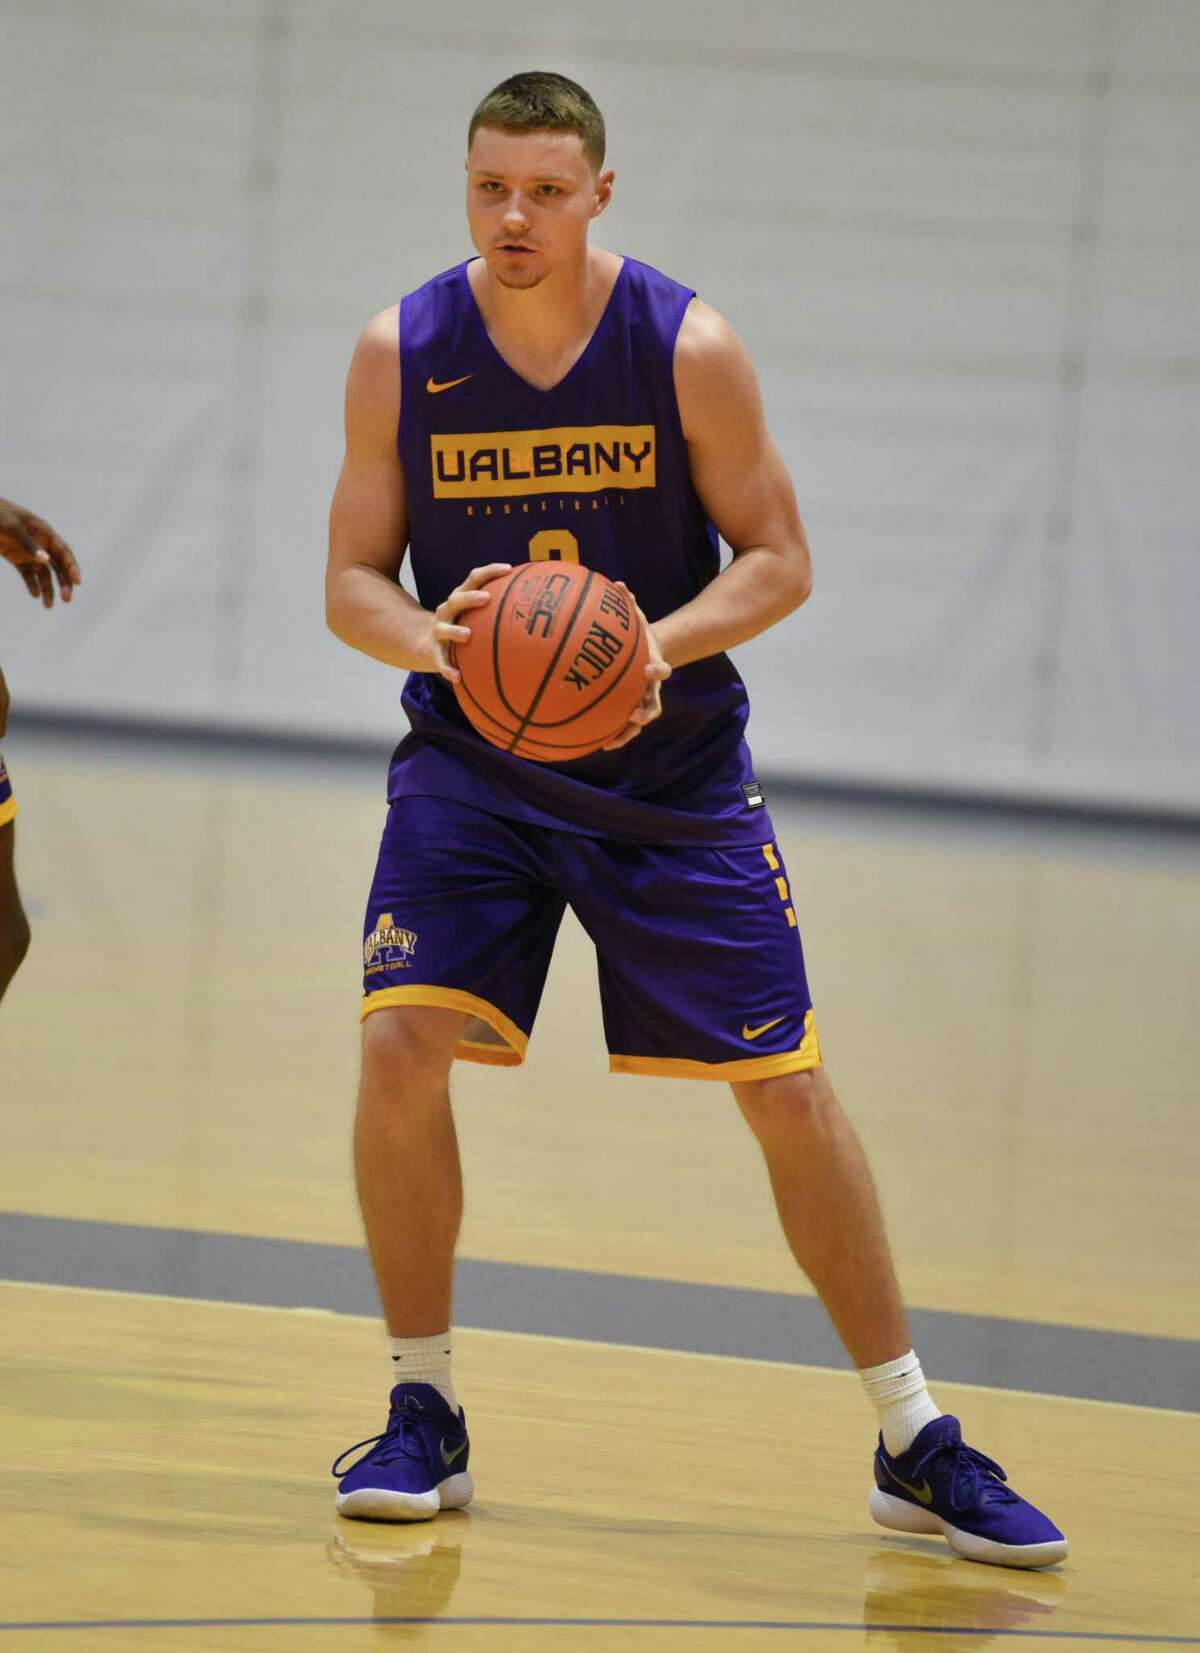 Trey Hutcheson looks to pass the ball during the first official practice for the University at Albany basketball team on Friday, Oct. 4, 2019 in Albany, N.Y. (Lori Van Buren/Times Union)